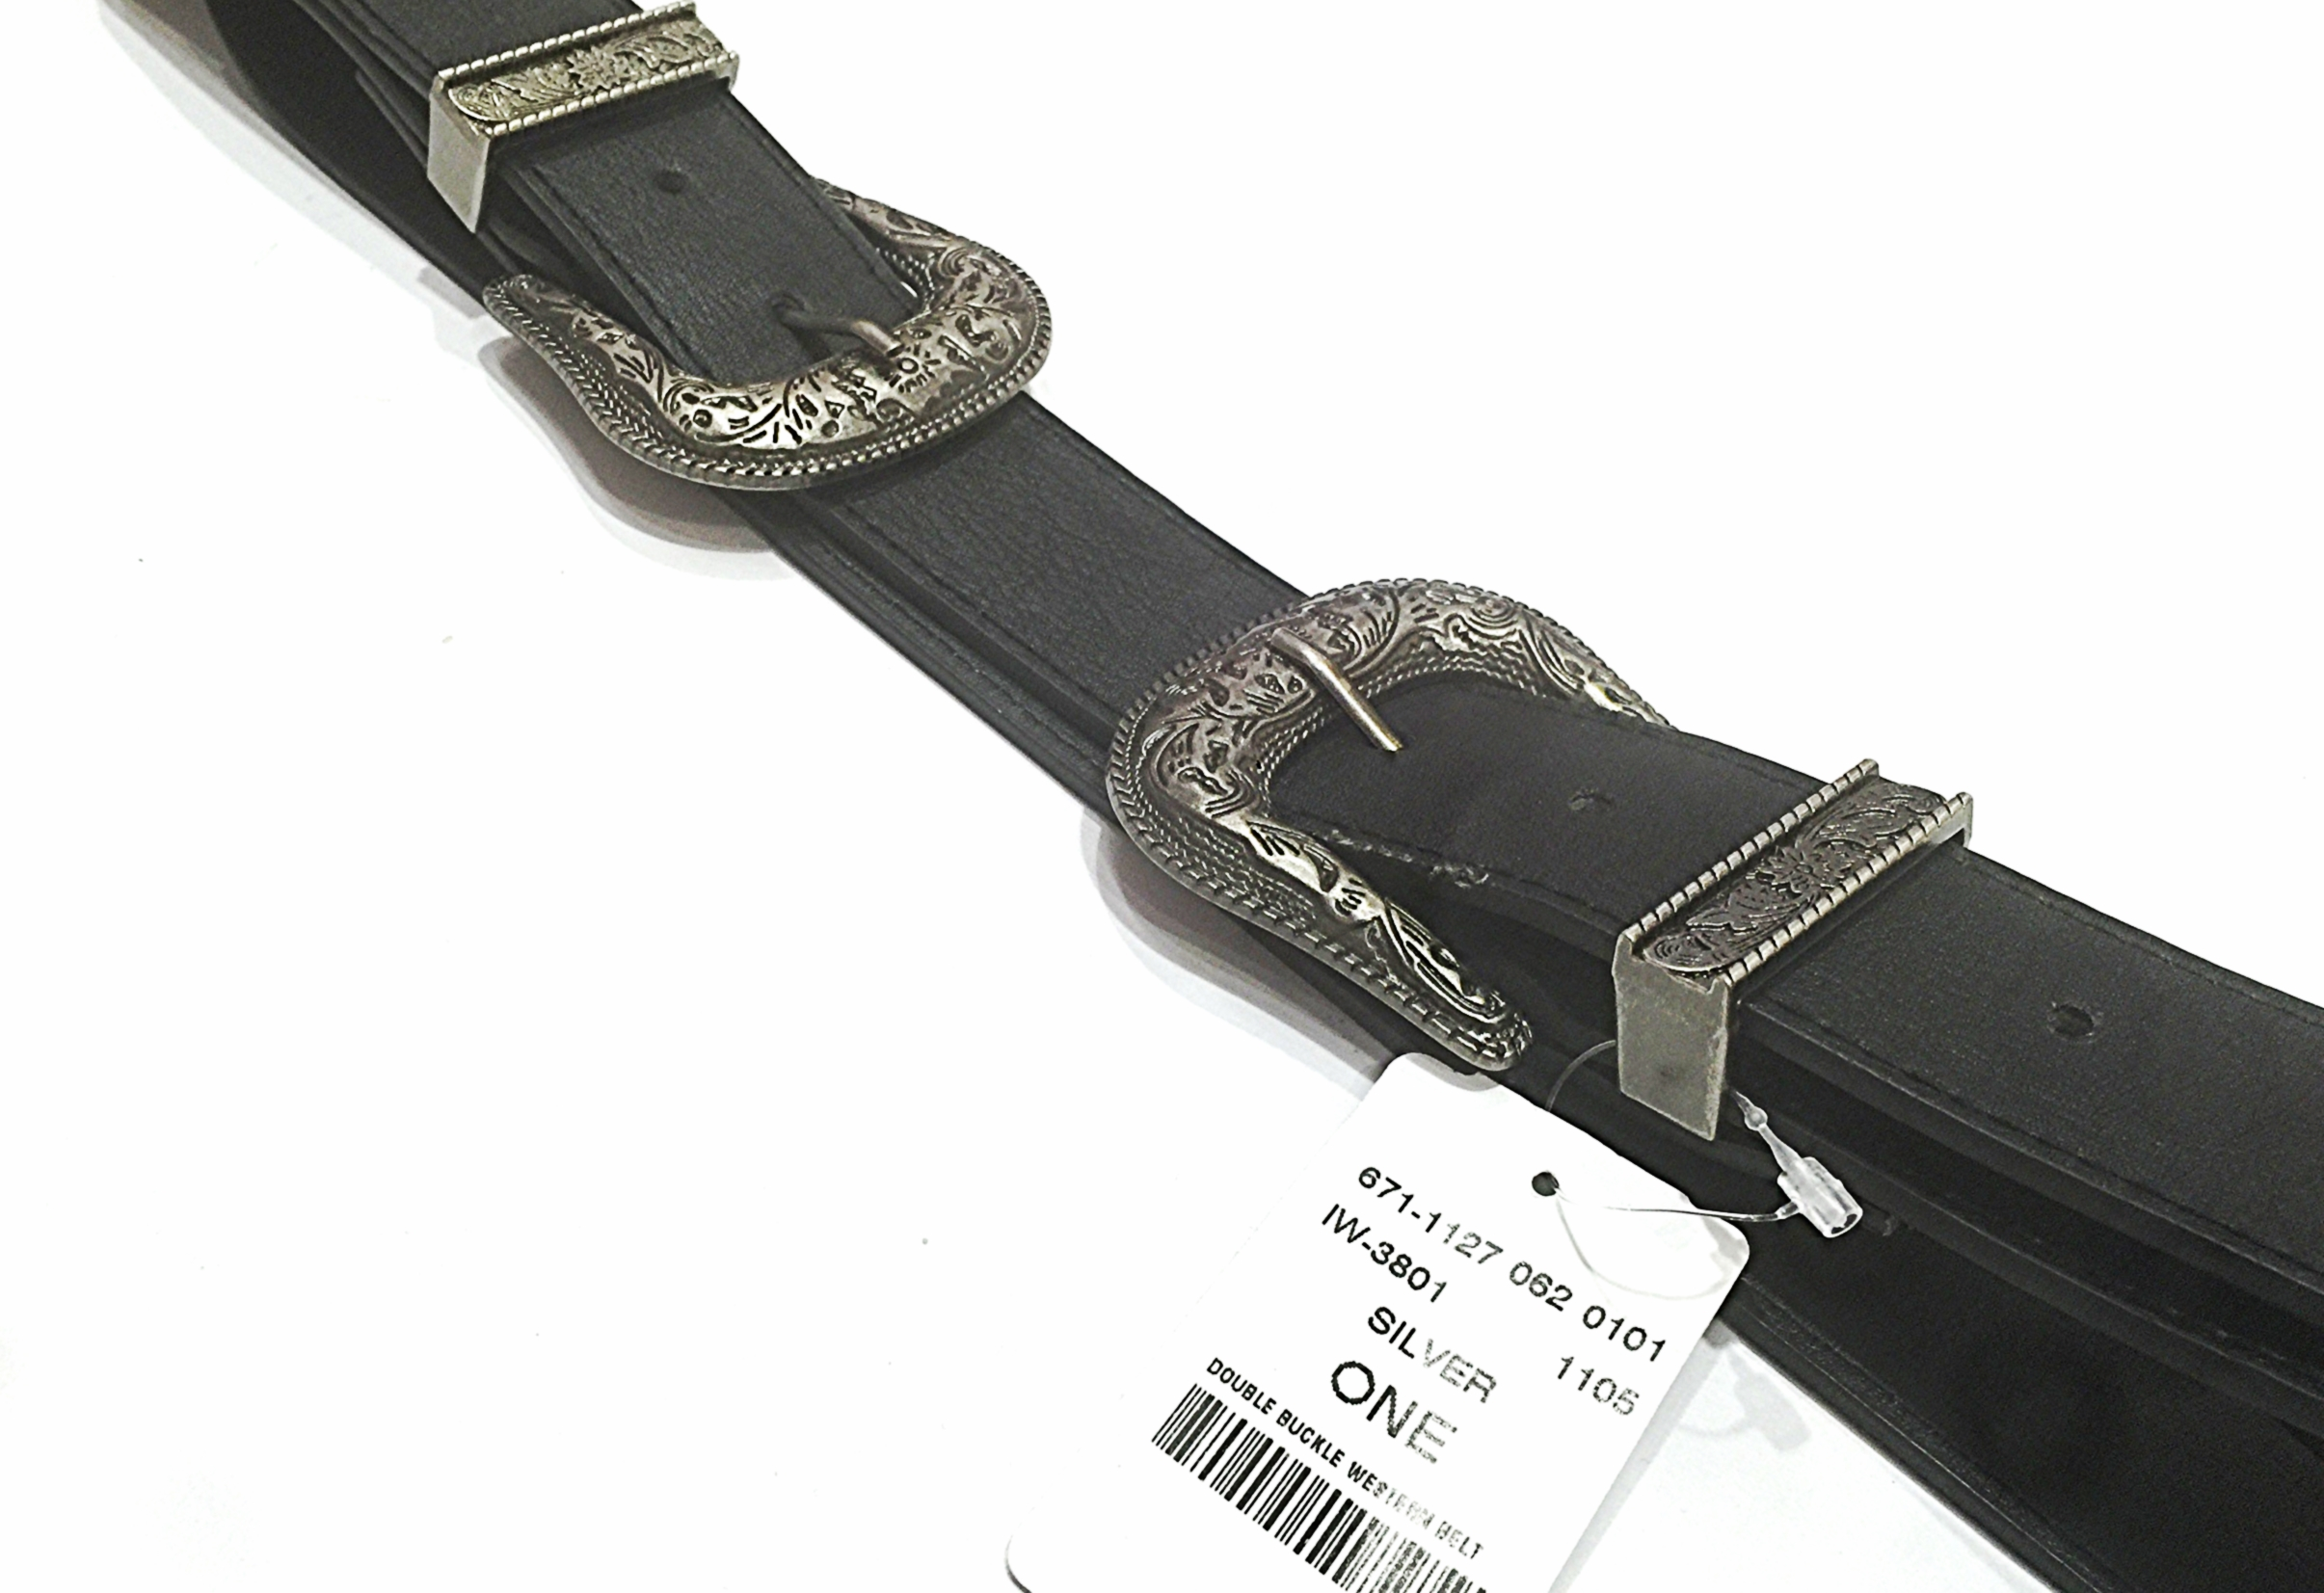 Mendocino   Faux leather double buckle belt. Mendocino is a store like many that carries multiple brands. Fortunately for them, unfortunately for us, they have such a high turn over rate their website doesn't have an inventory list. To purchase this belt find a store near you and contact them directly to see whats in stock!    Click here   .    You can pair this belt with jeans, maxi skirts, dresses, or jean shorts!